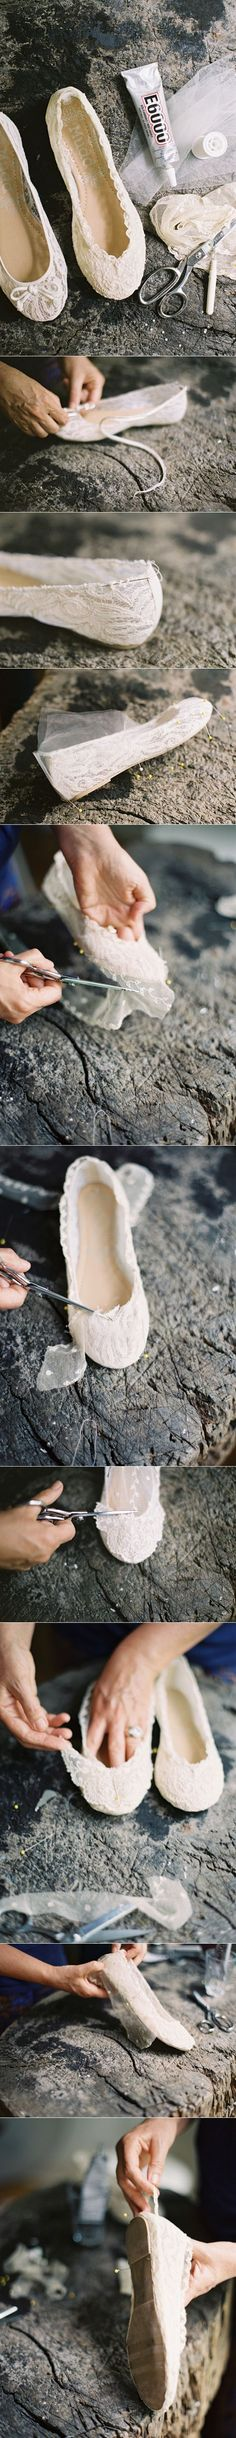 DIY Lace Ballet Flats,  I'll make my own  since I can't find a cute pair I like!